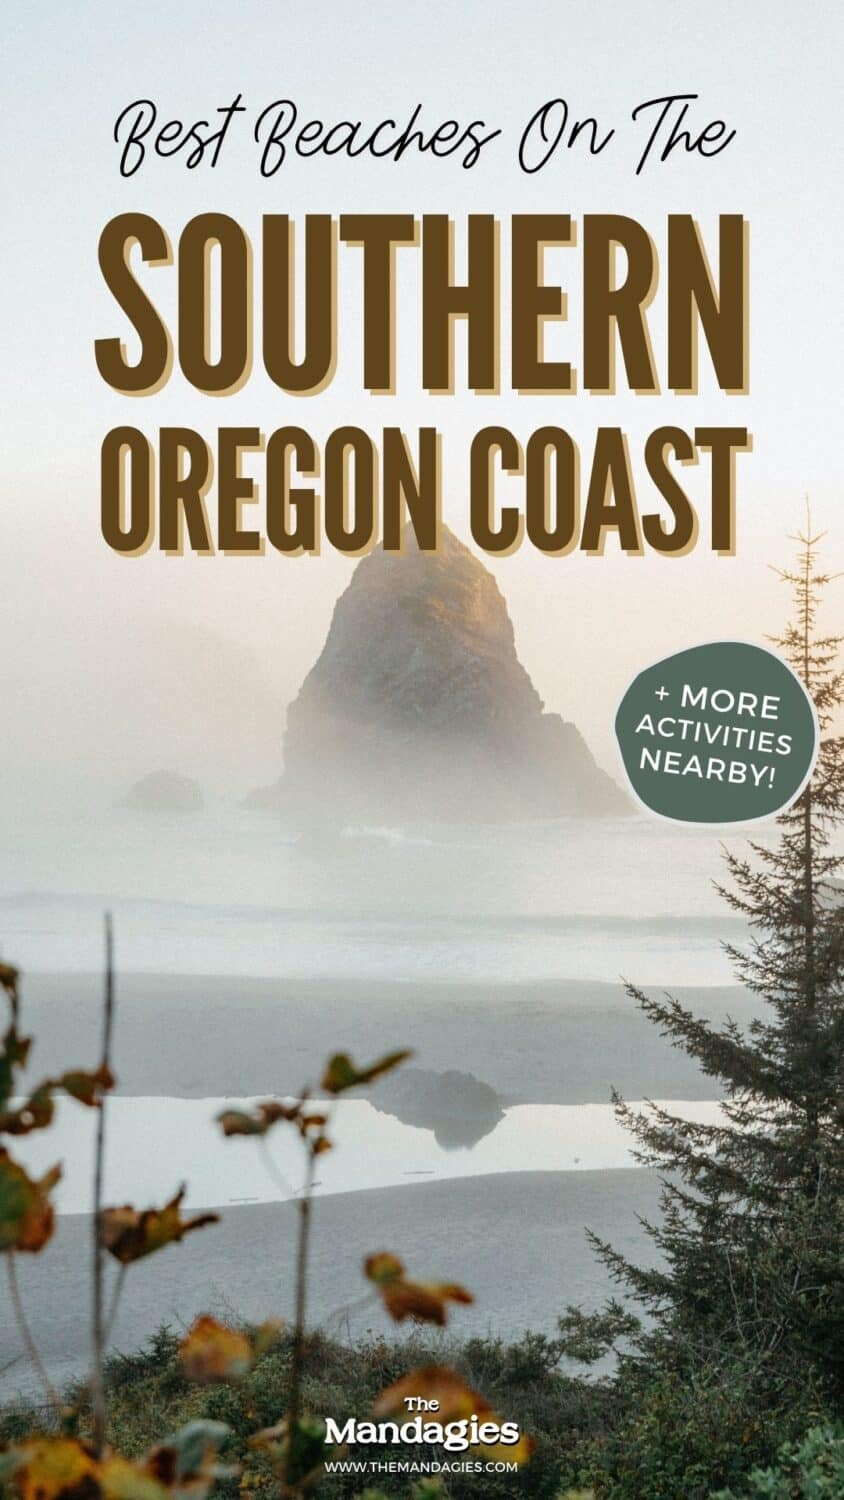 The Southern Oregon coast is full of magical spots, including Samuel H Boardman Scenic Corridor, Coos Bay, Port Orford, and Gold Beach. Save this post for your next Oregon coast road trip! Southern Oregon Beaches | Southern Oregon Coast Towns | Southern Oregon Coast Attractions #oregon #oregoncoast #southernoregoncoast #samuelhboardman #pacificnorthwest #PNW #Westcoast #outdoors #nature #adventures #photography